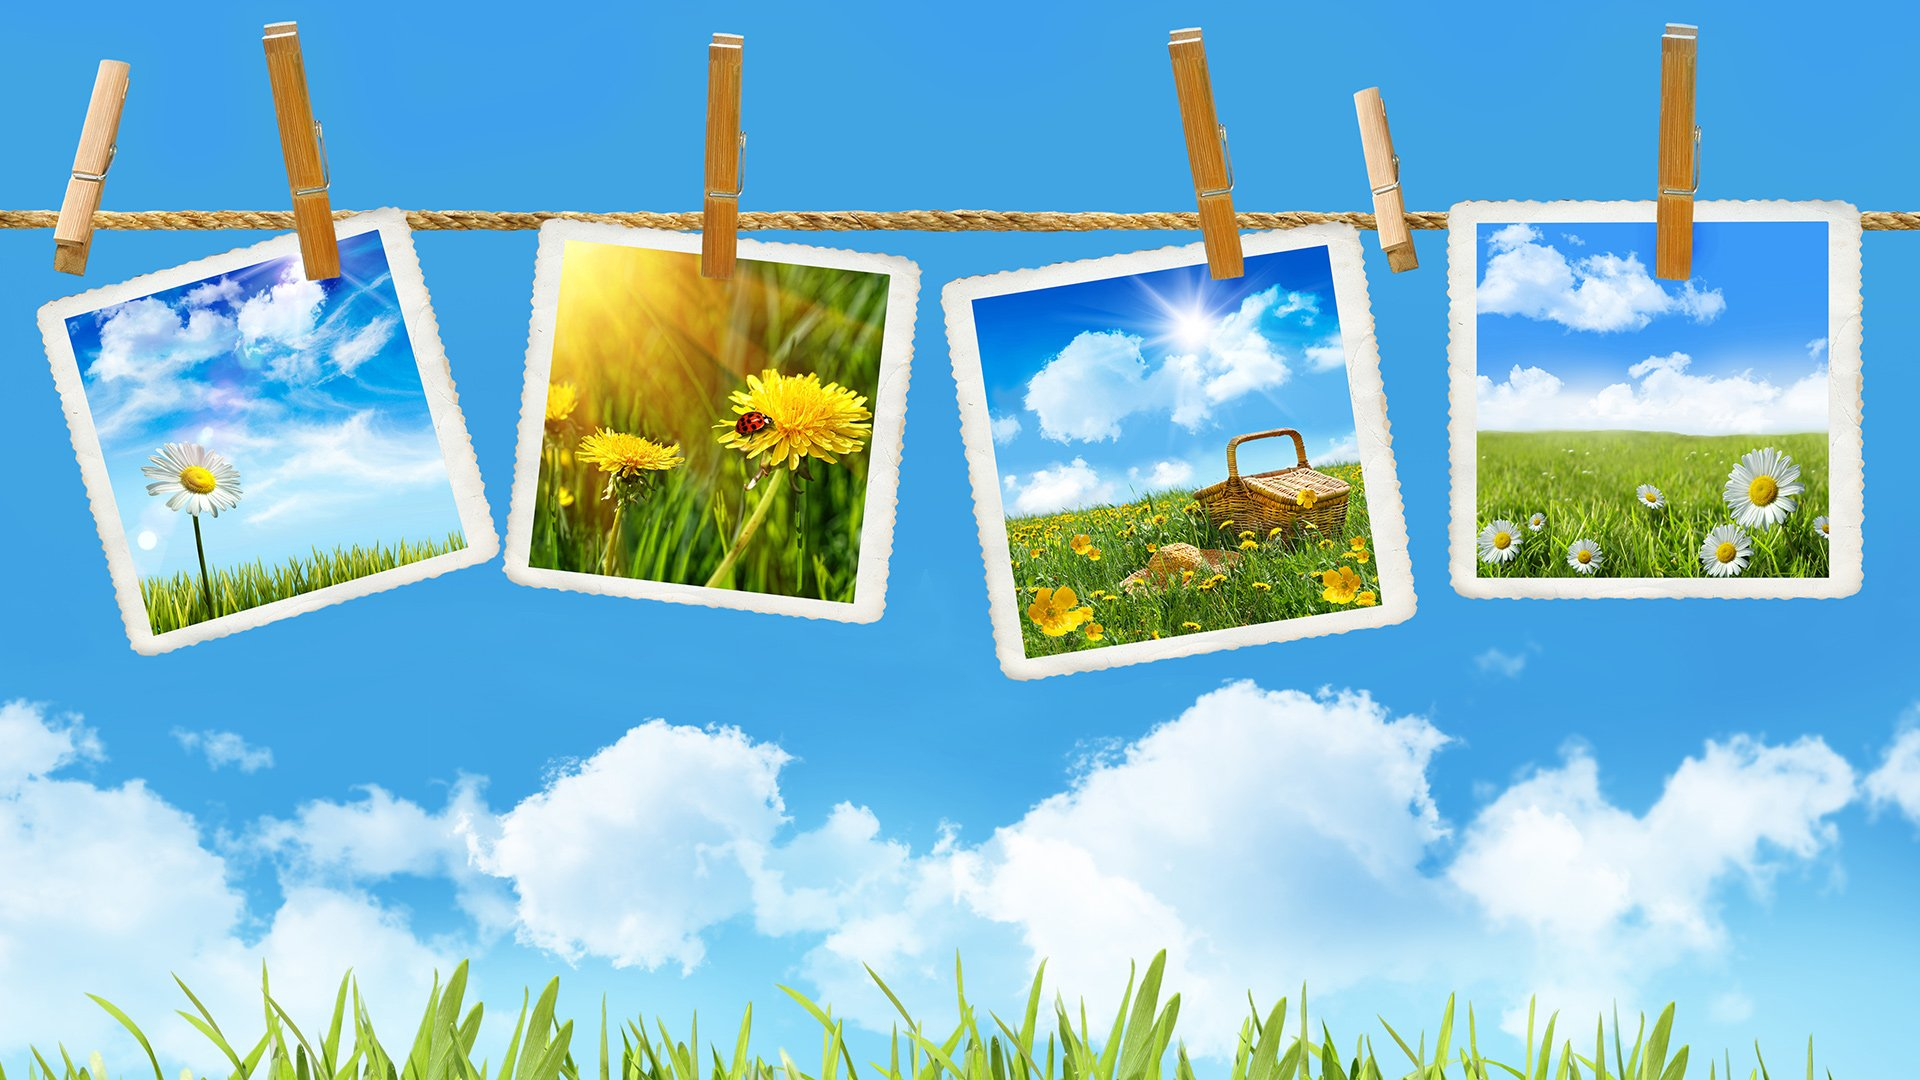 Wallpapers ID:358878